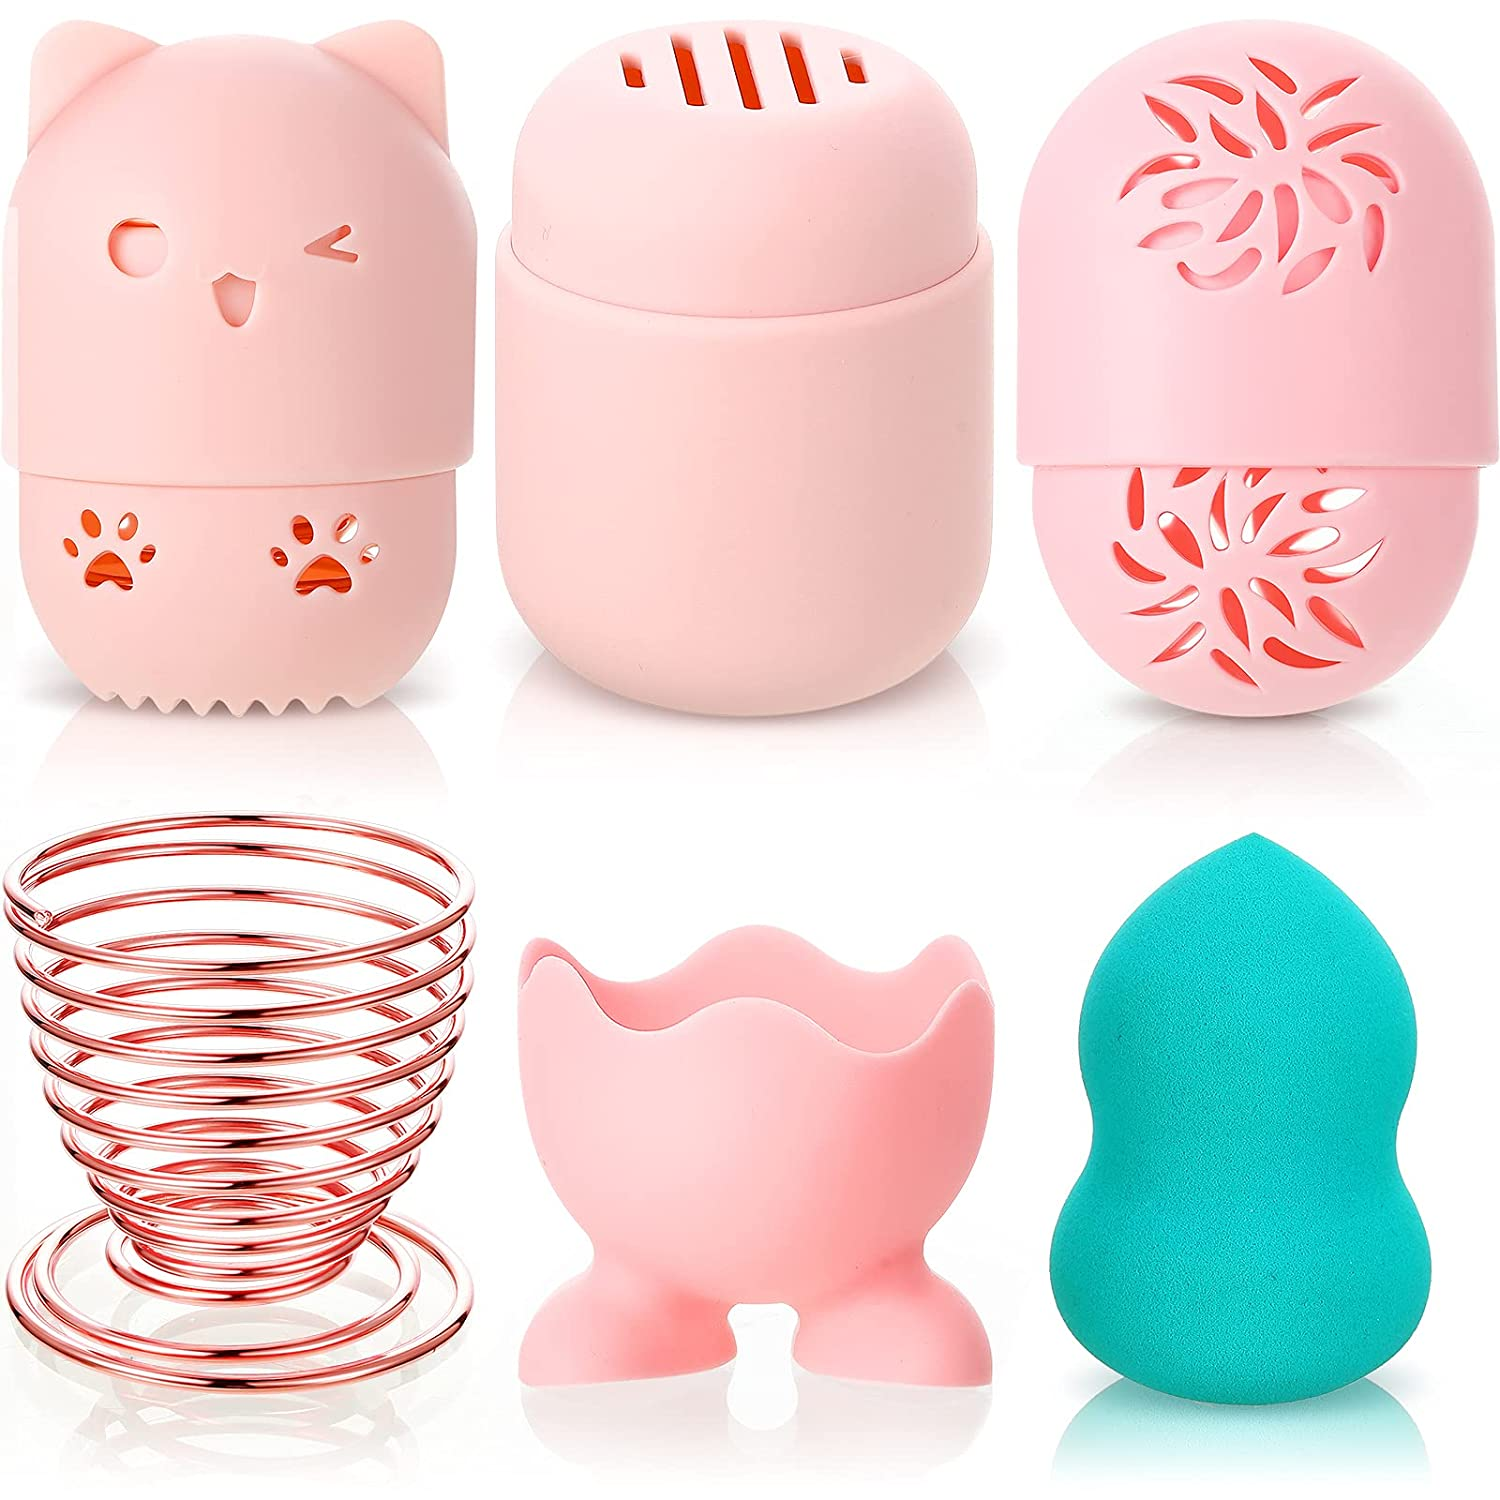 5 Pieces Makeup Sponge Holder Portable Blender Holder Silicone Sponge Blender Container Beauty Sponge Drying Holder Travel Case Cute Makeup Sponge Display Stand for Daily and Travel Use, 5 Styles